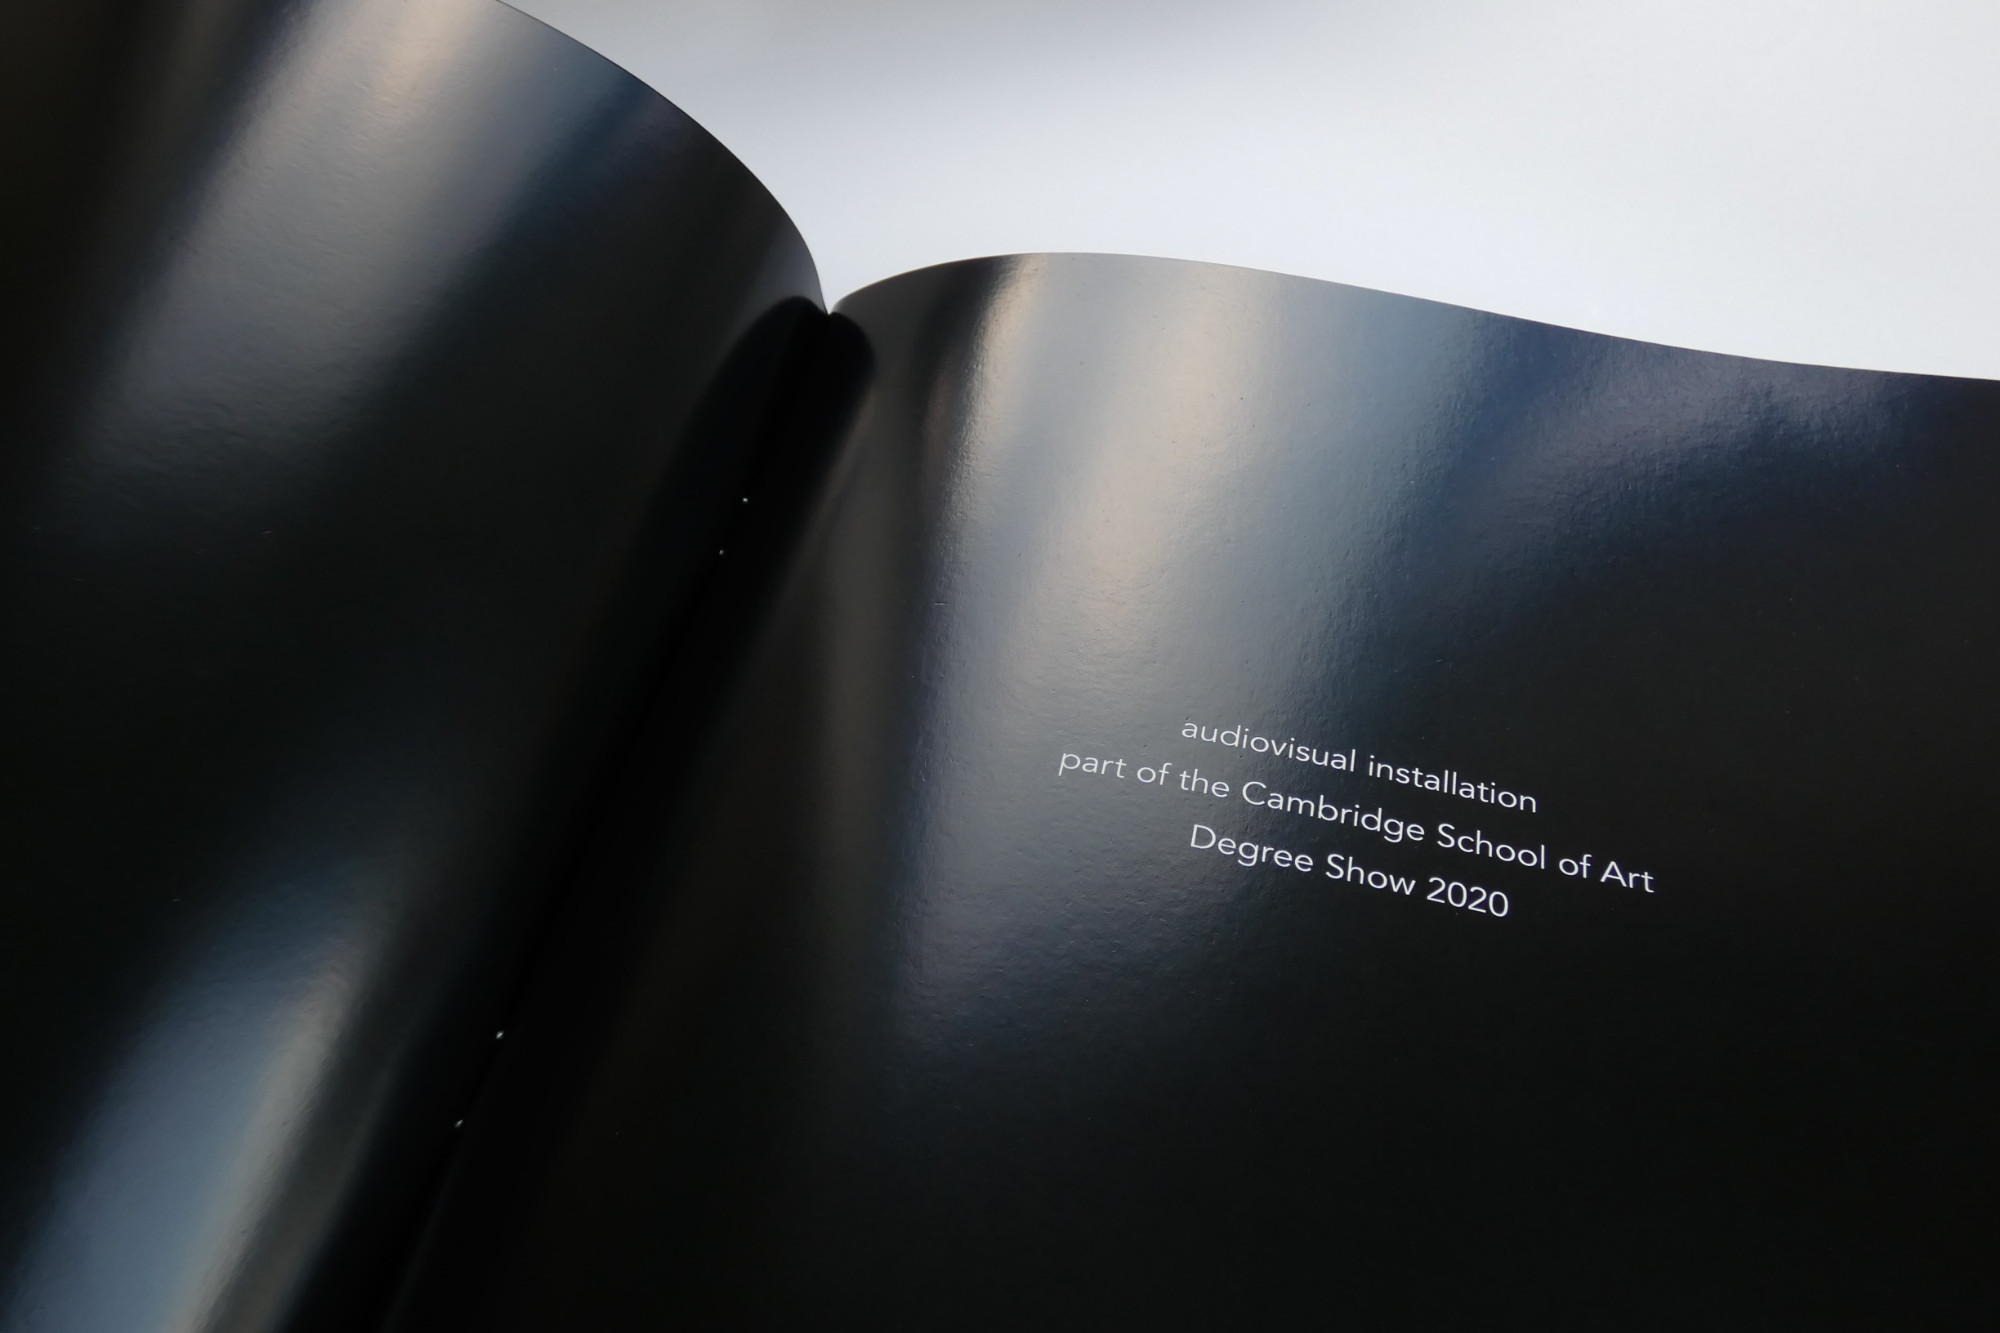 The first page of the exhibition catalogue was designed for the physical degree show that was going to take place in summer of 2020. Diana Montañez Rivera.